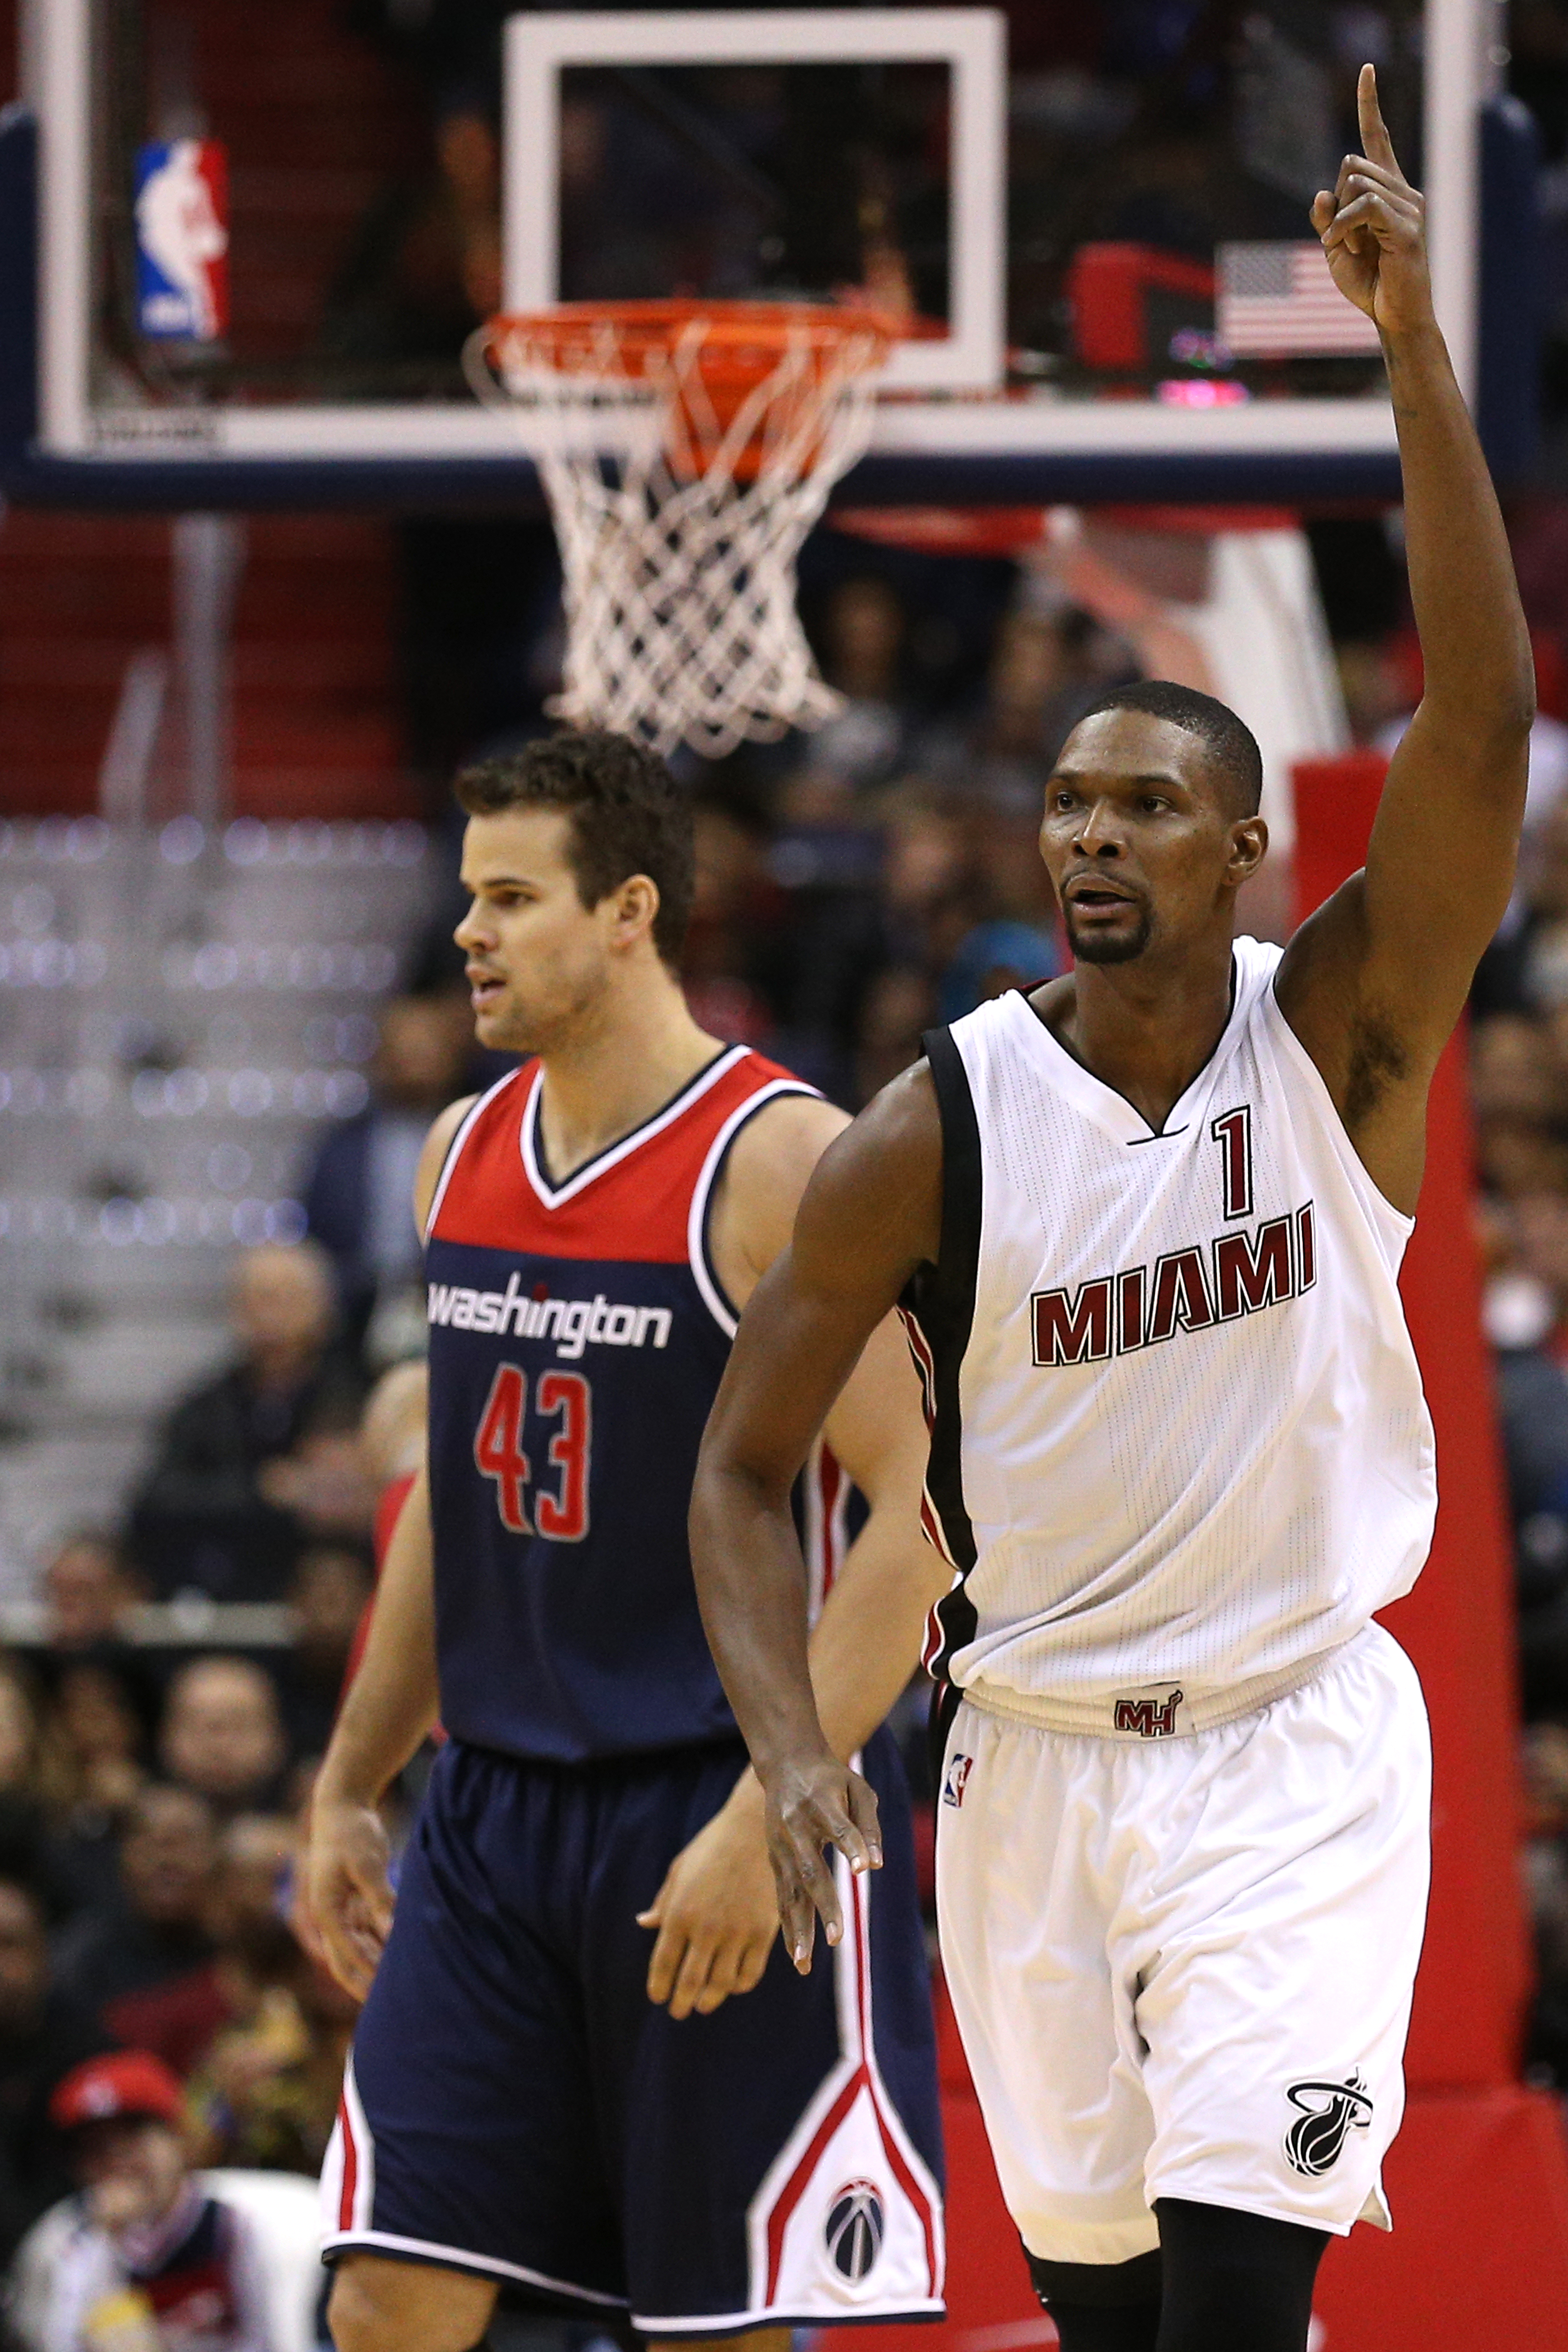 WASHINGTON, DC - JANUARY 03: Chris Bosh #1 of the Miami Heat celebrates after scoring against the Washington Wizards during the second half at Verizon Center on January 3, 2016 in Washington, DC. The Miami Heat won, 97-75. (Photo by Patrick Smith/Getty Im